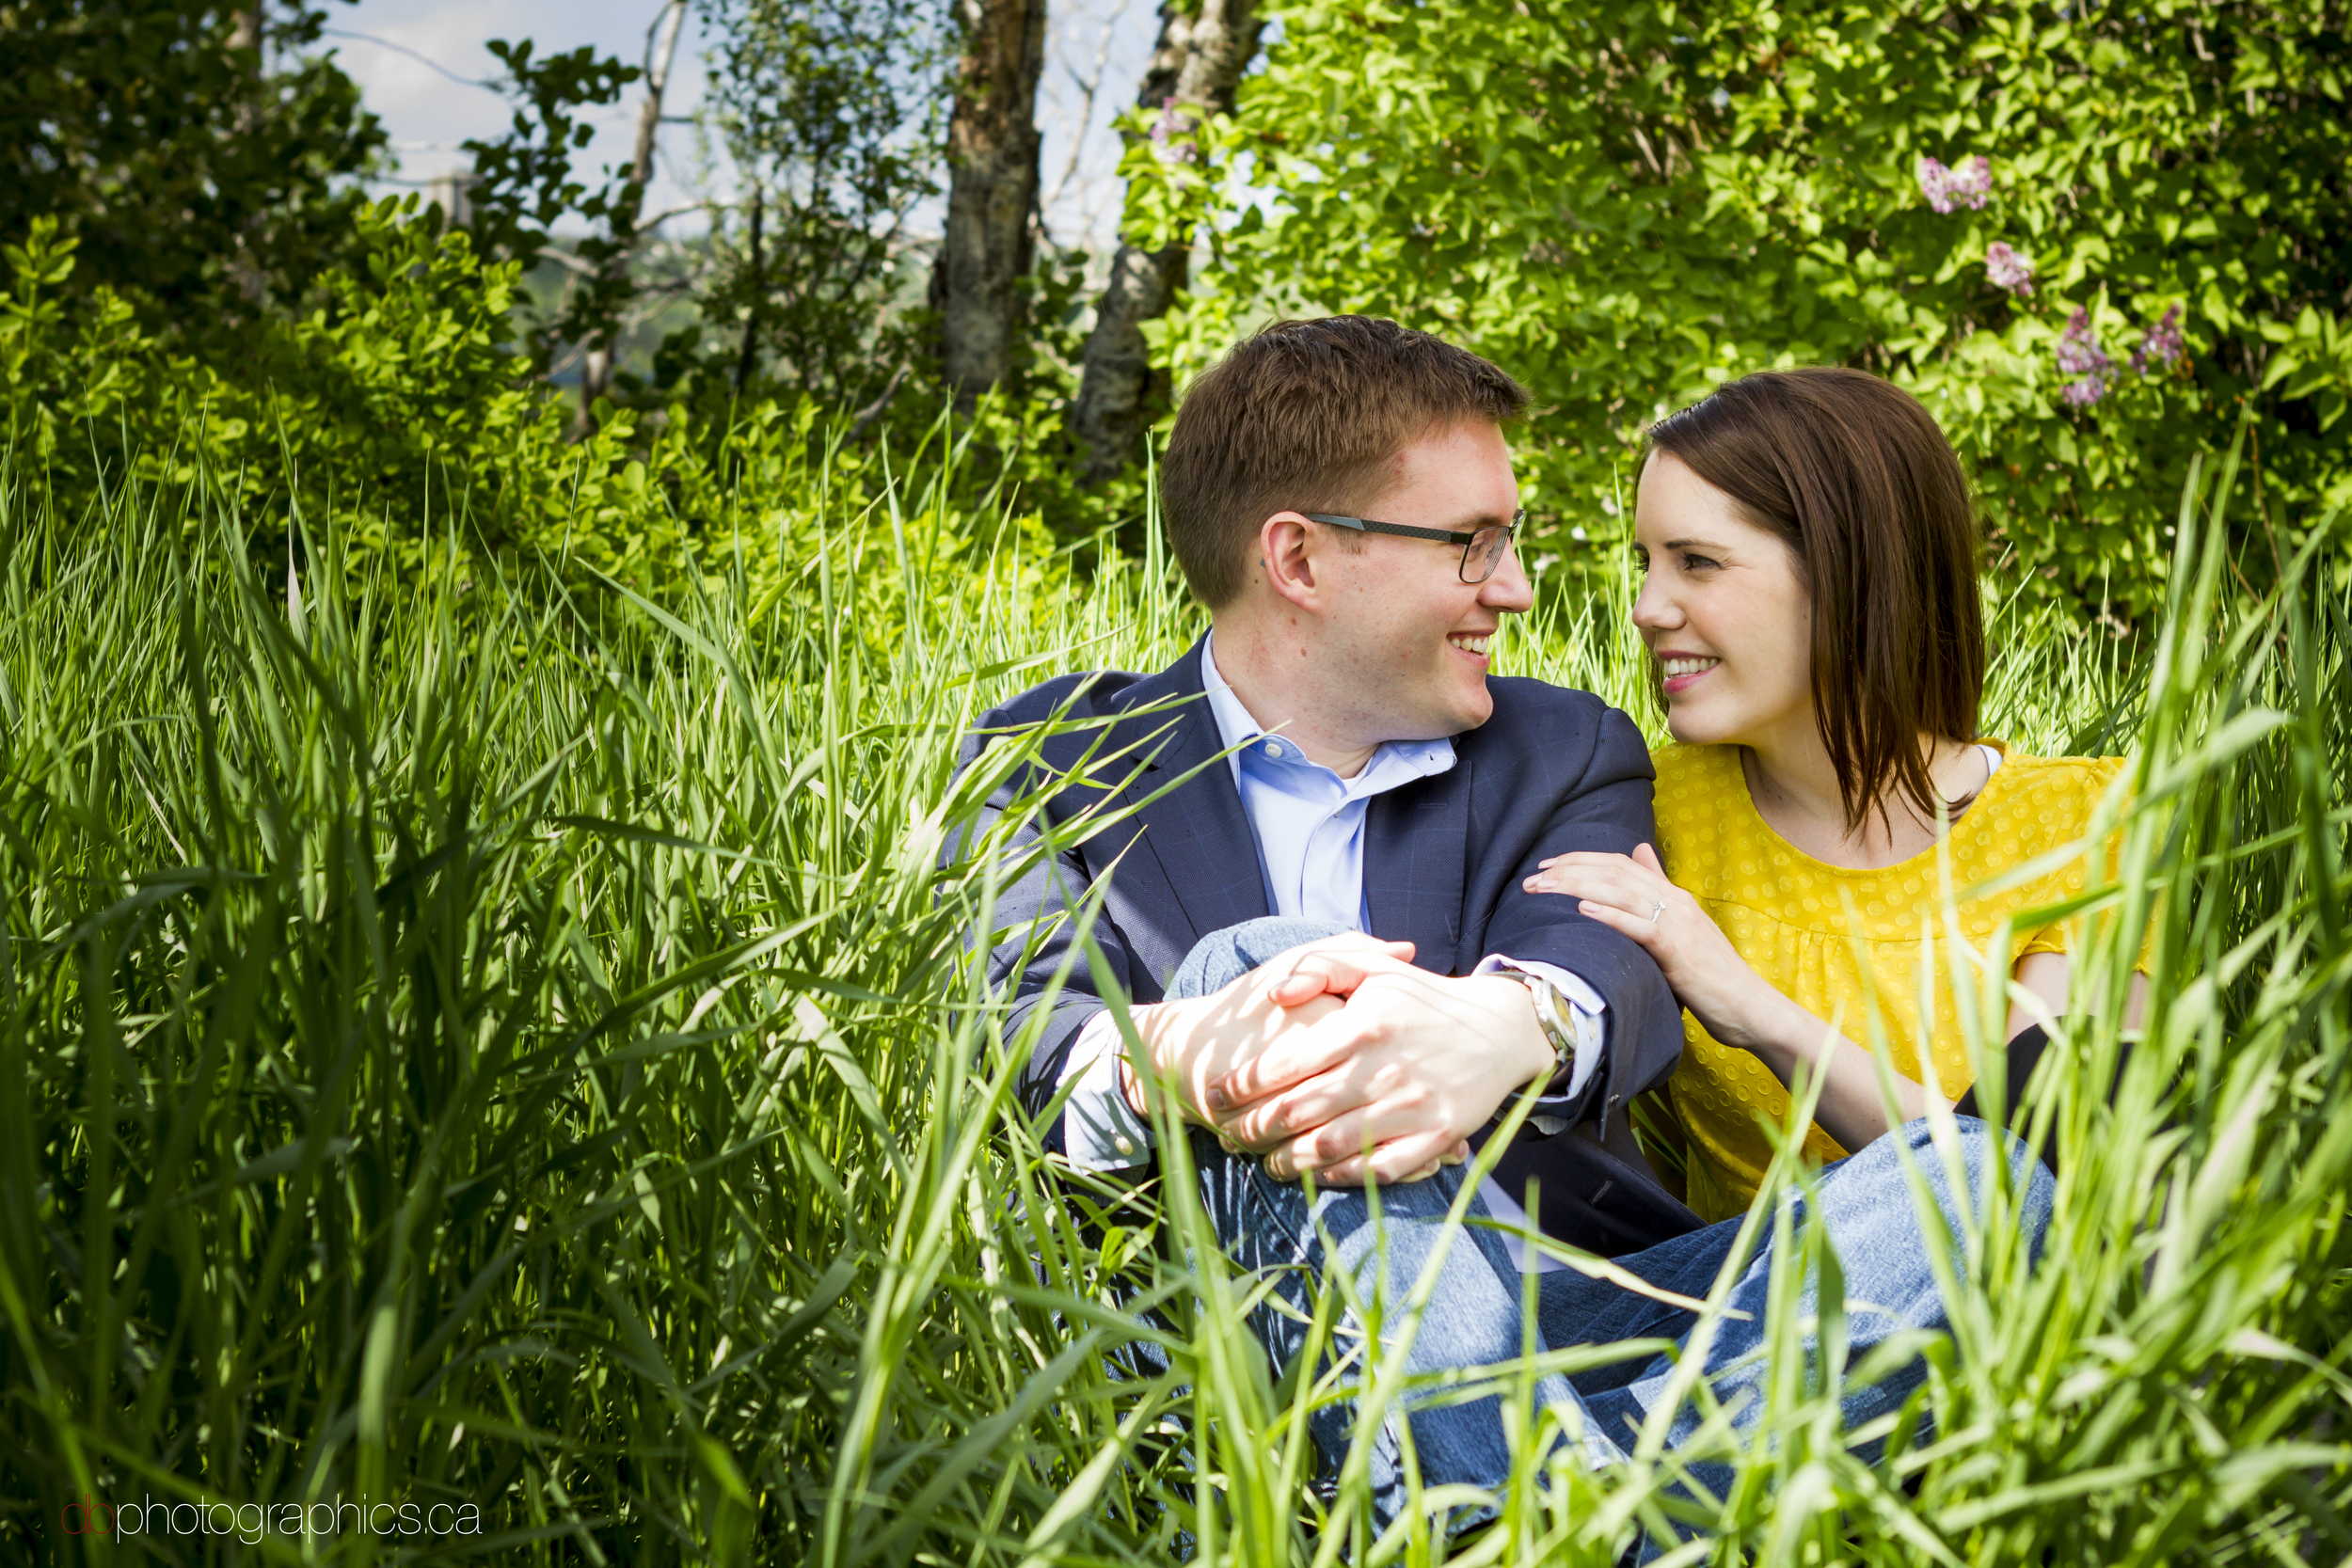 Paula-Andrew-Engagement-78-lr-blog.jpg